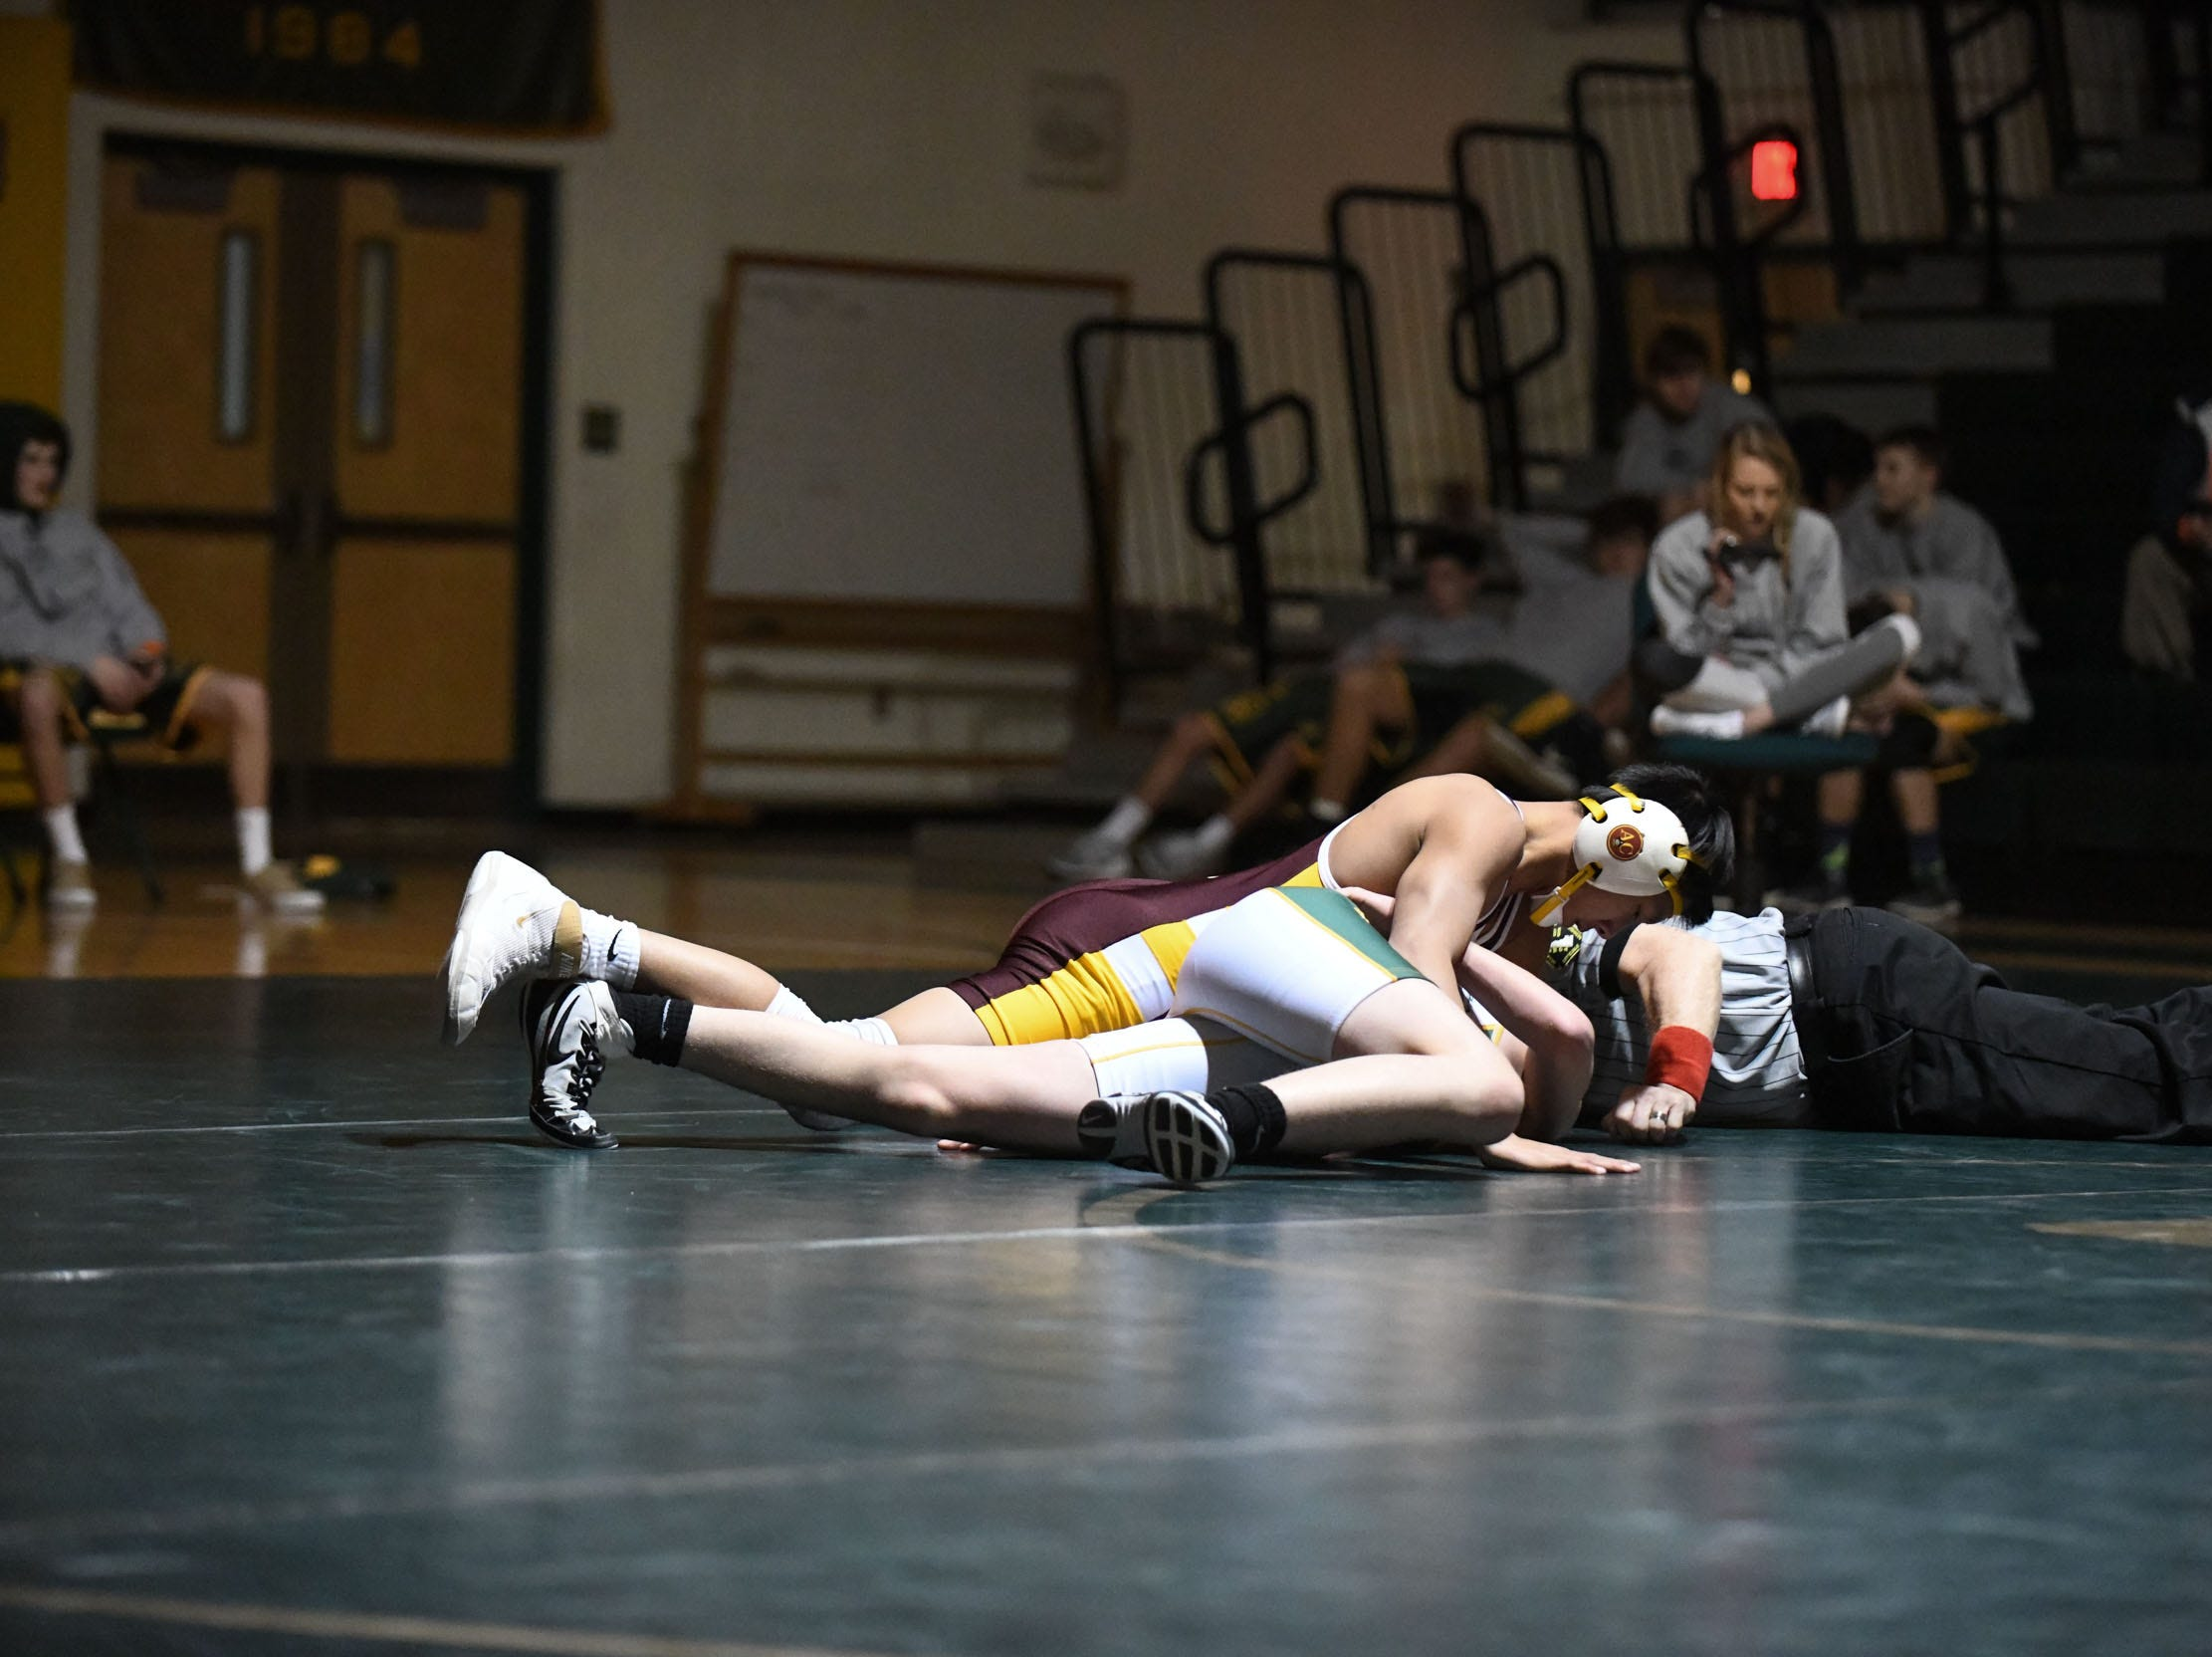 Indian River's Joshua Edwards battled Milford's Dominic Feightner during the 138lb match on Thursday, Jan 17, 2019 in Dagsboro, Del. Milford won the match 53-15.